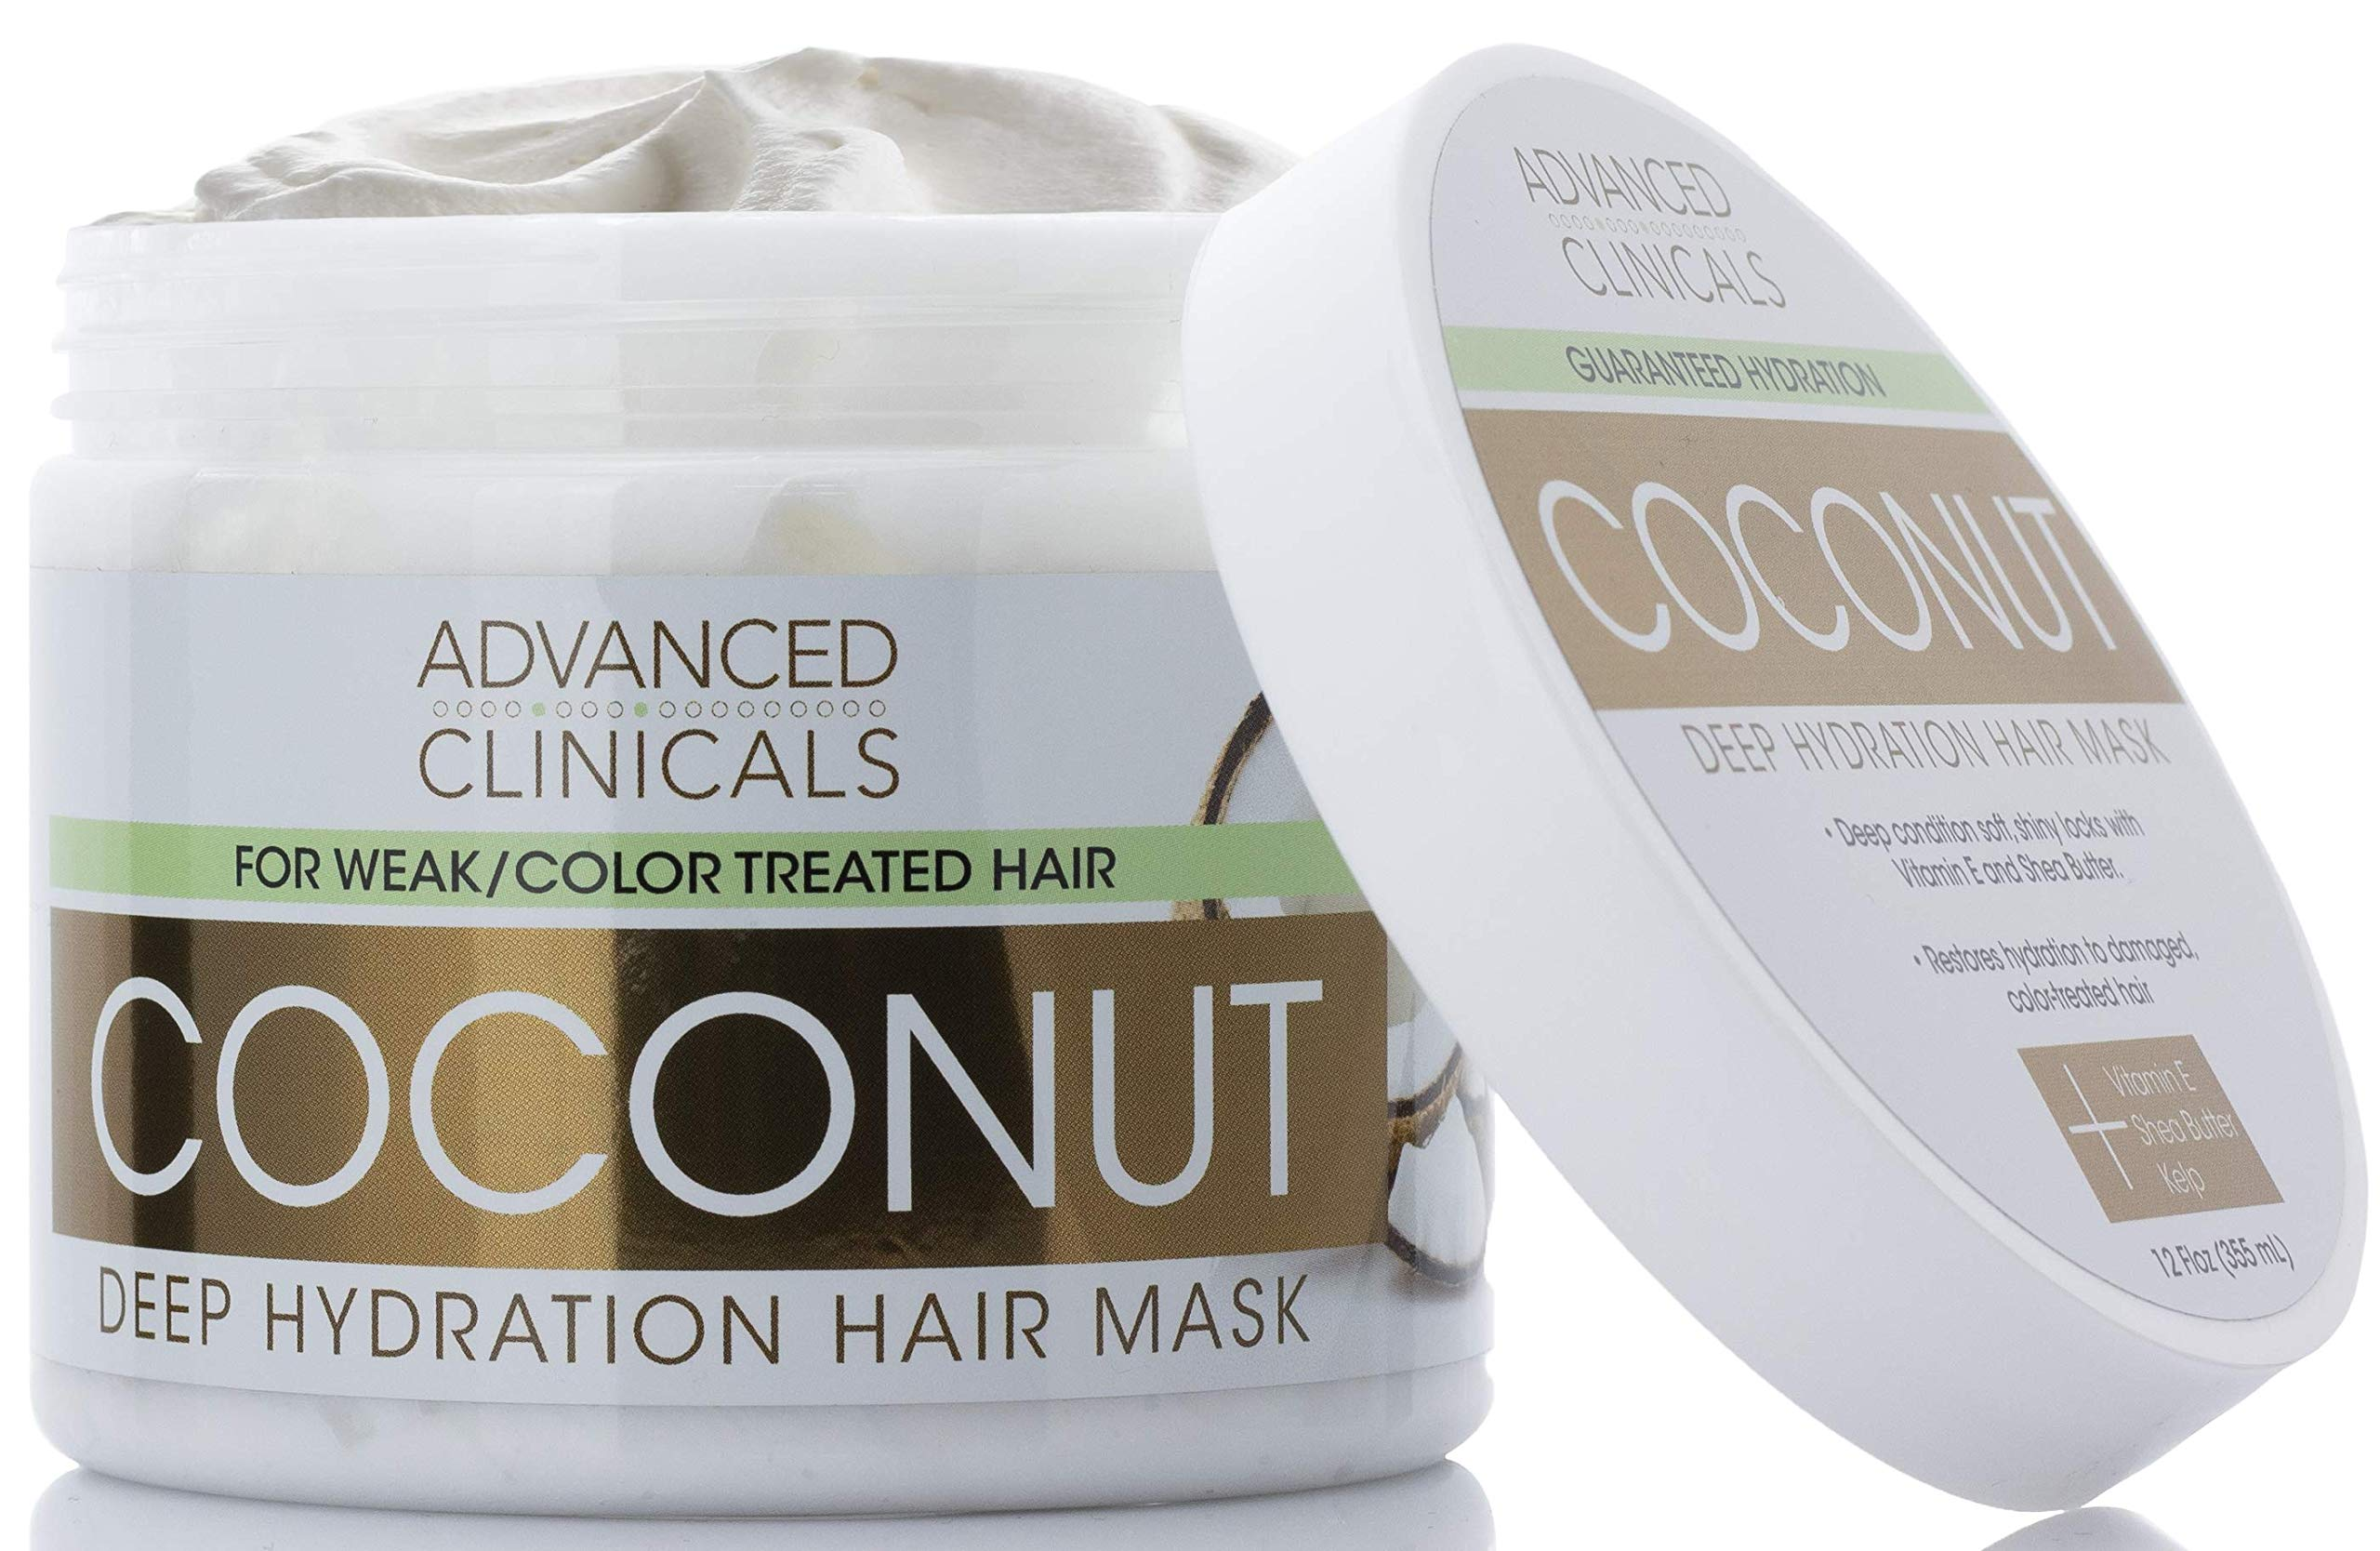 Advanced Clinicals Coconut Oil Deep Hydration Hair Repair Mask. Moisturizing Deep Conditioner to Strengthen Dry, Color-Treated, Weak Hair. Boost Growth w/Shea Butter & Kelp Strengthening Mask, 12 oz